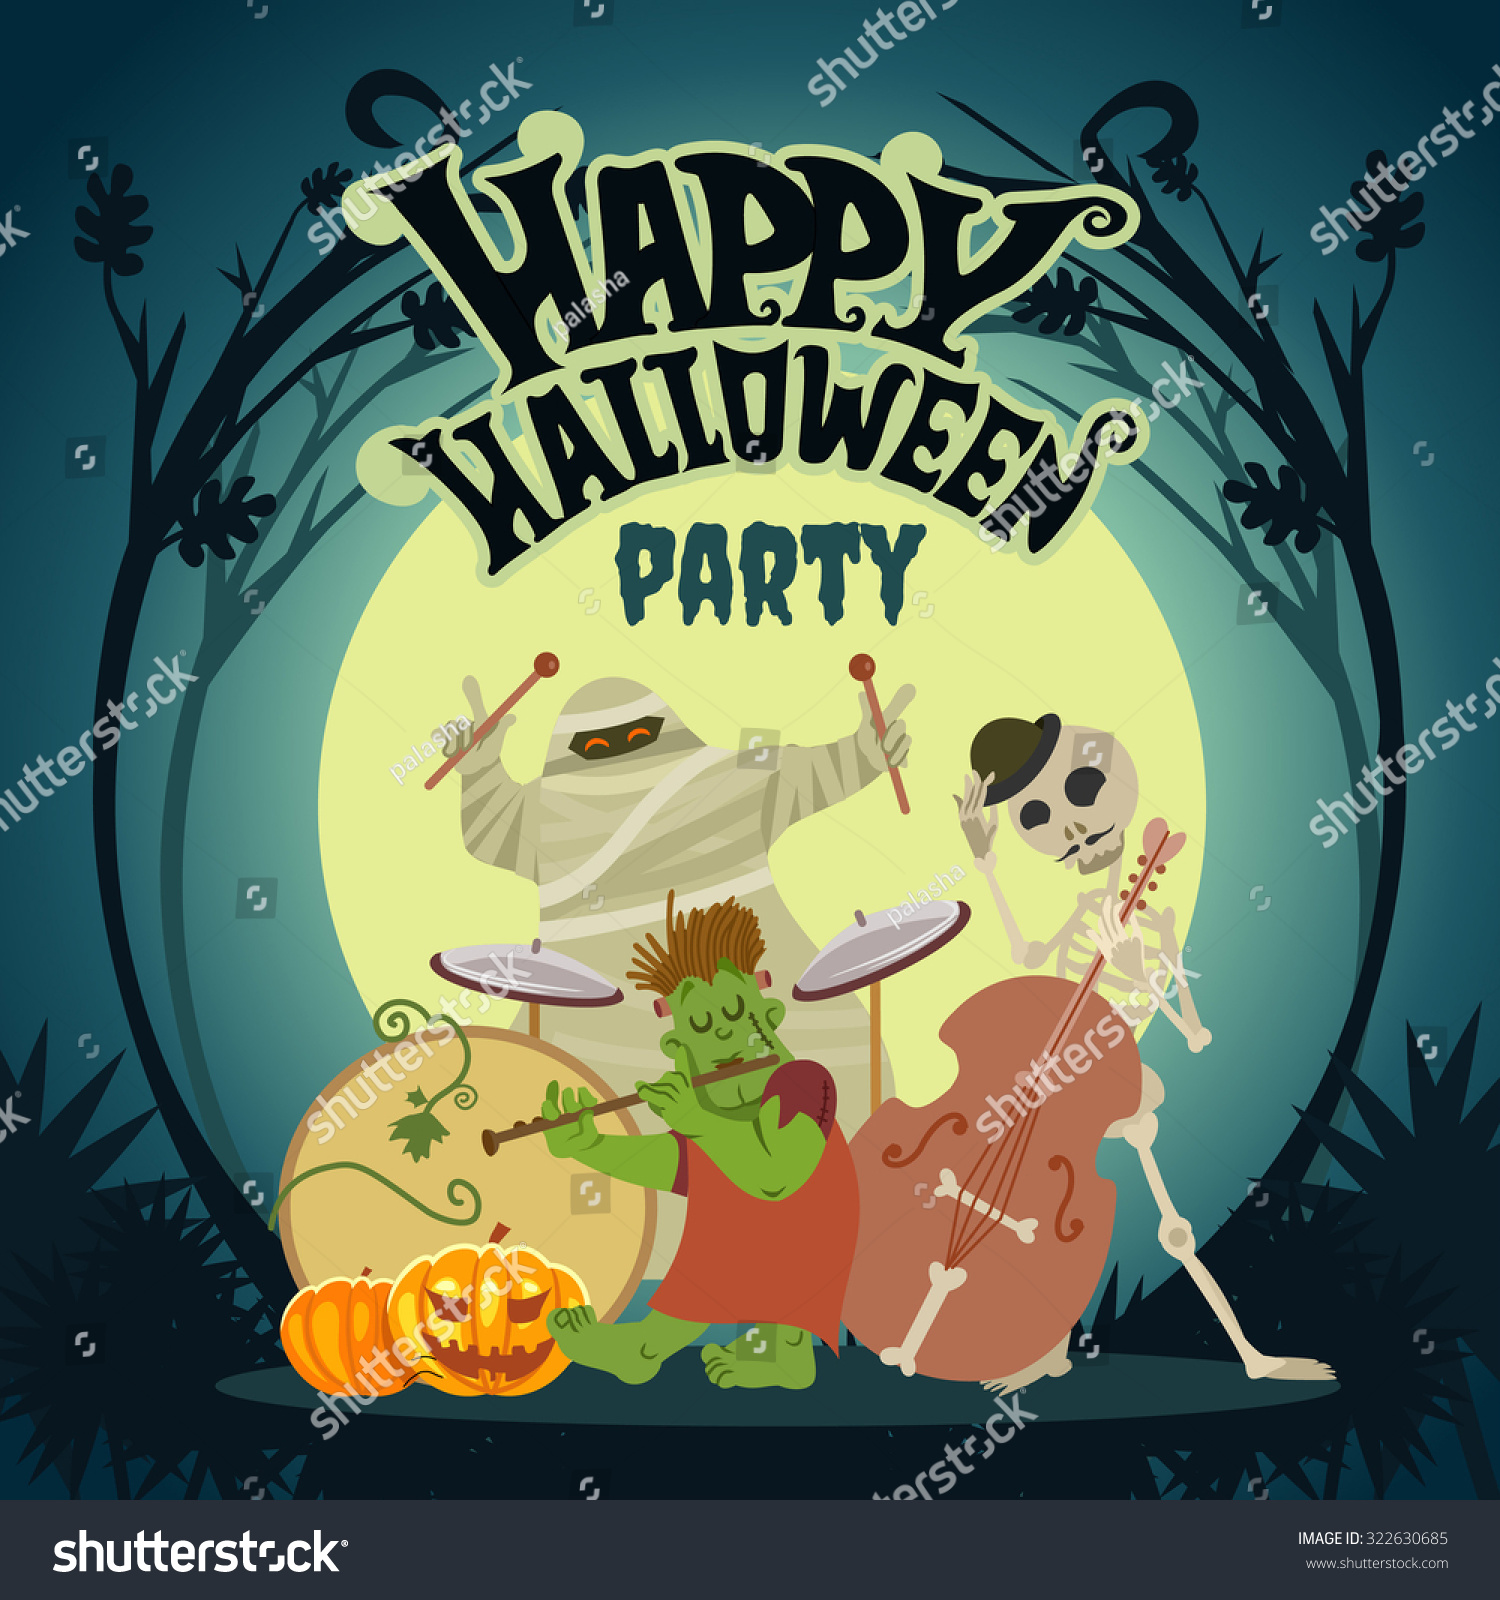 Event design solutions gallery minute to win it games puddle jumper cute cartoon halloween music band playing stock vector blueprint party malvernweather Gallery